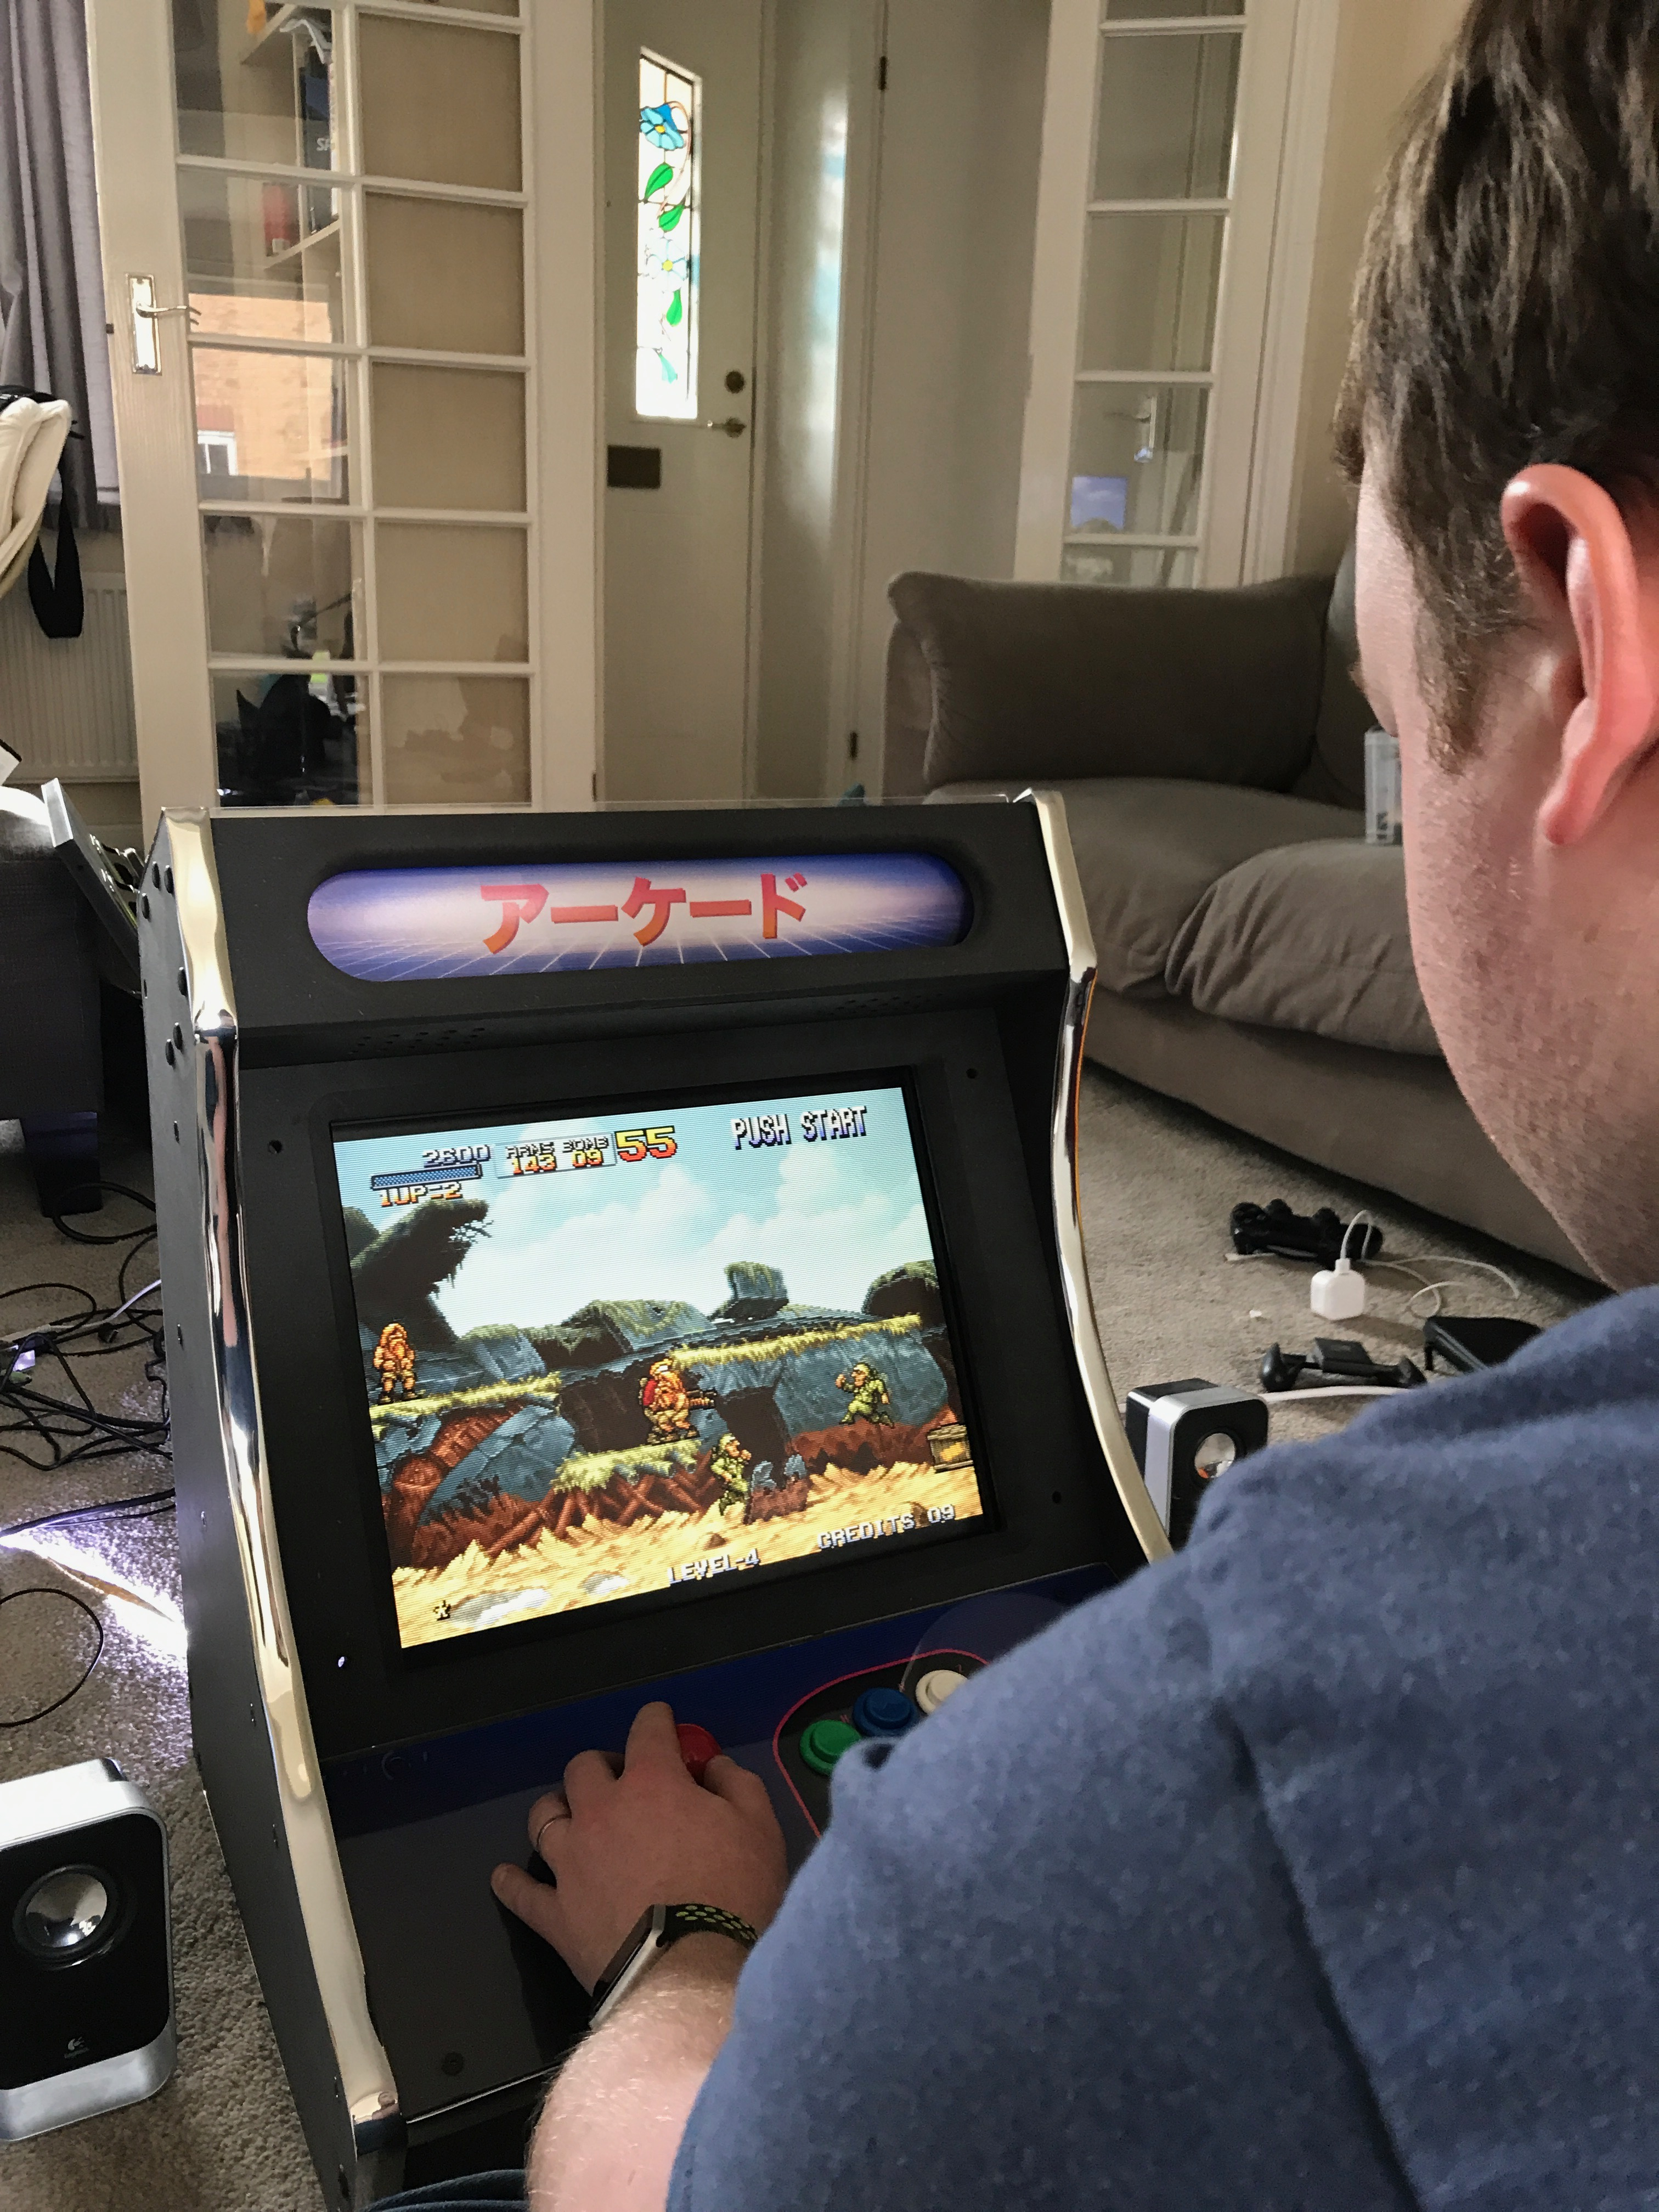 Building An Arcade Cabinet: The Hardware